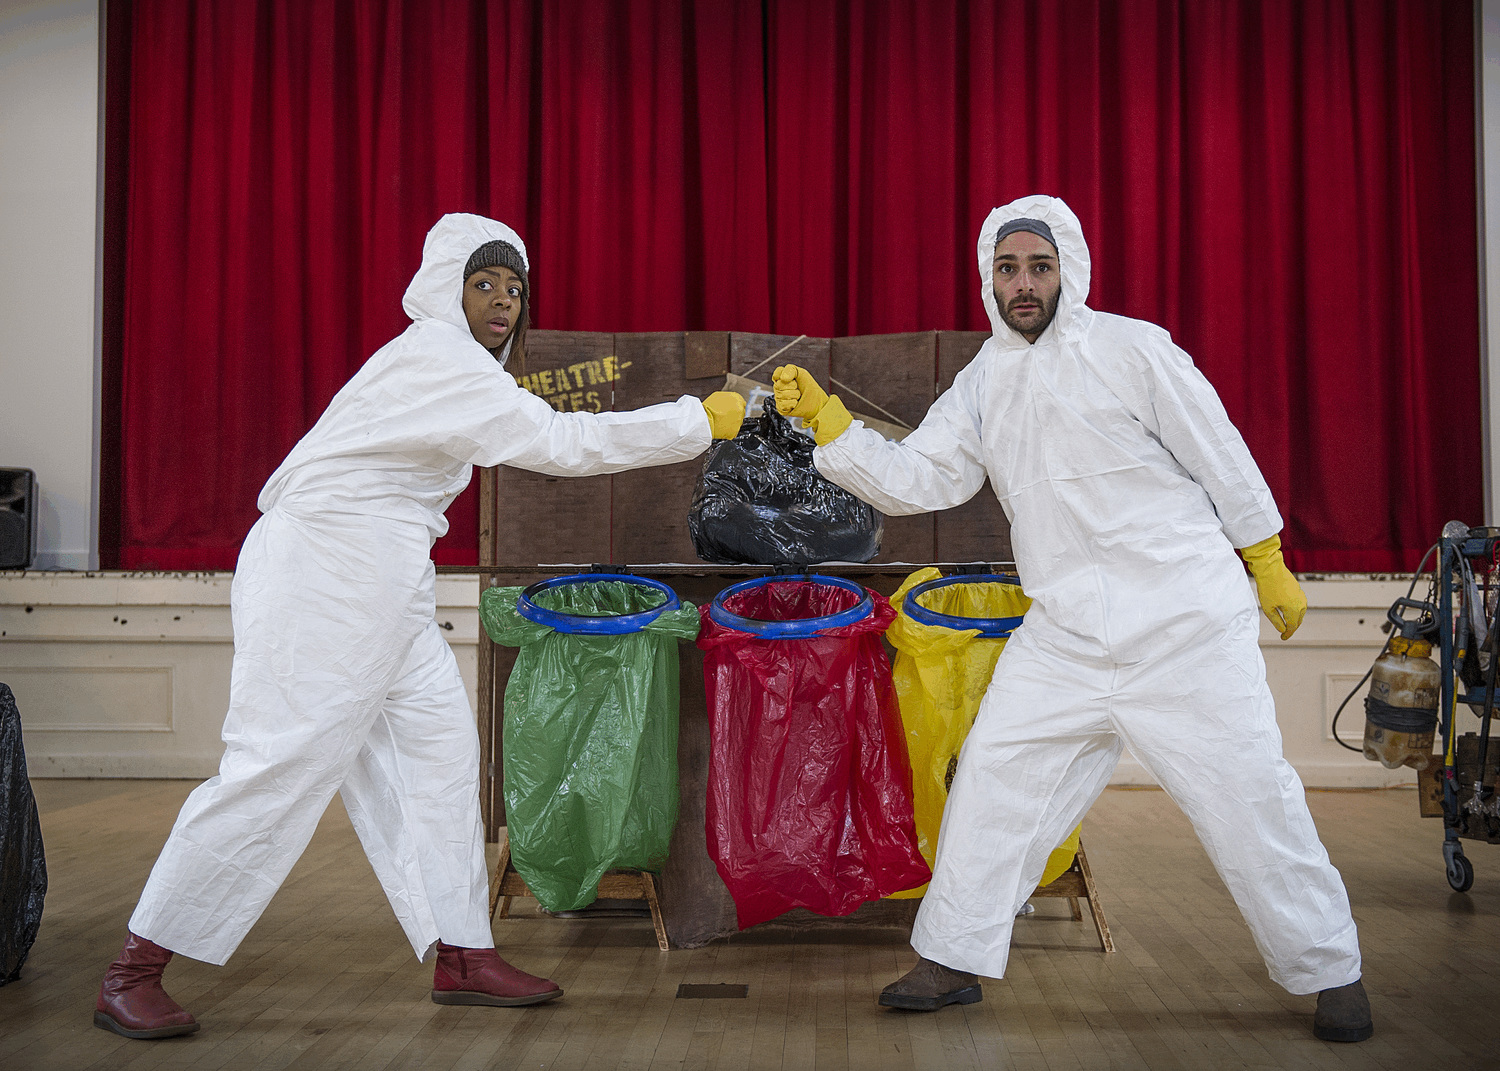 Two people wearing white hygenie suits and yellow gloves, fist bump each other as they stand in front of 3 different coloured recycling bags